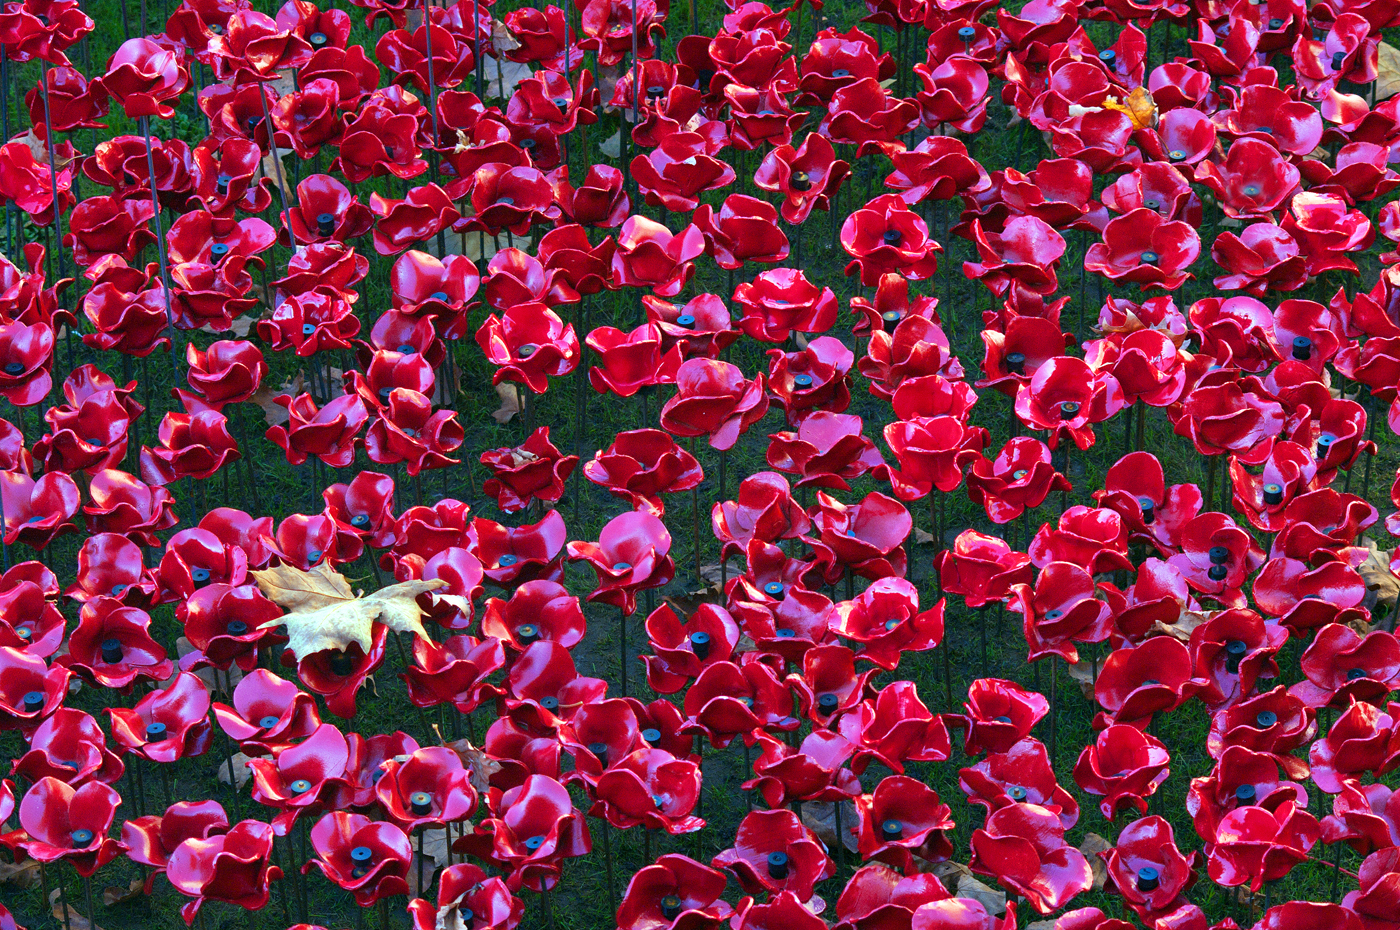 LEST WE FORGET by Terry Cork